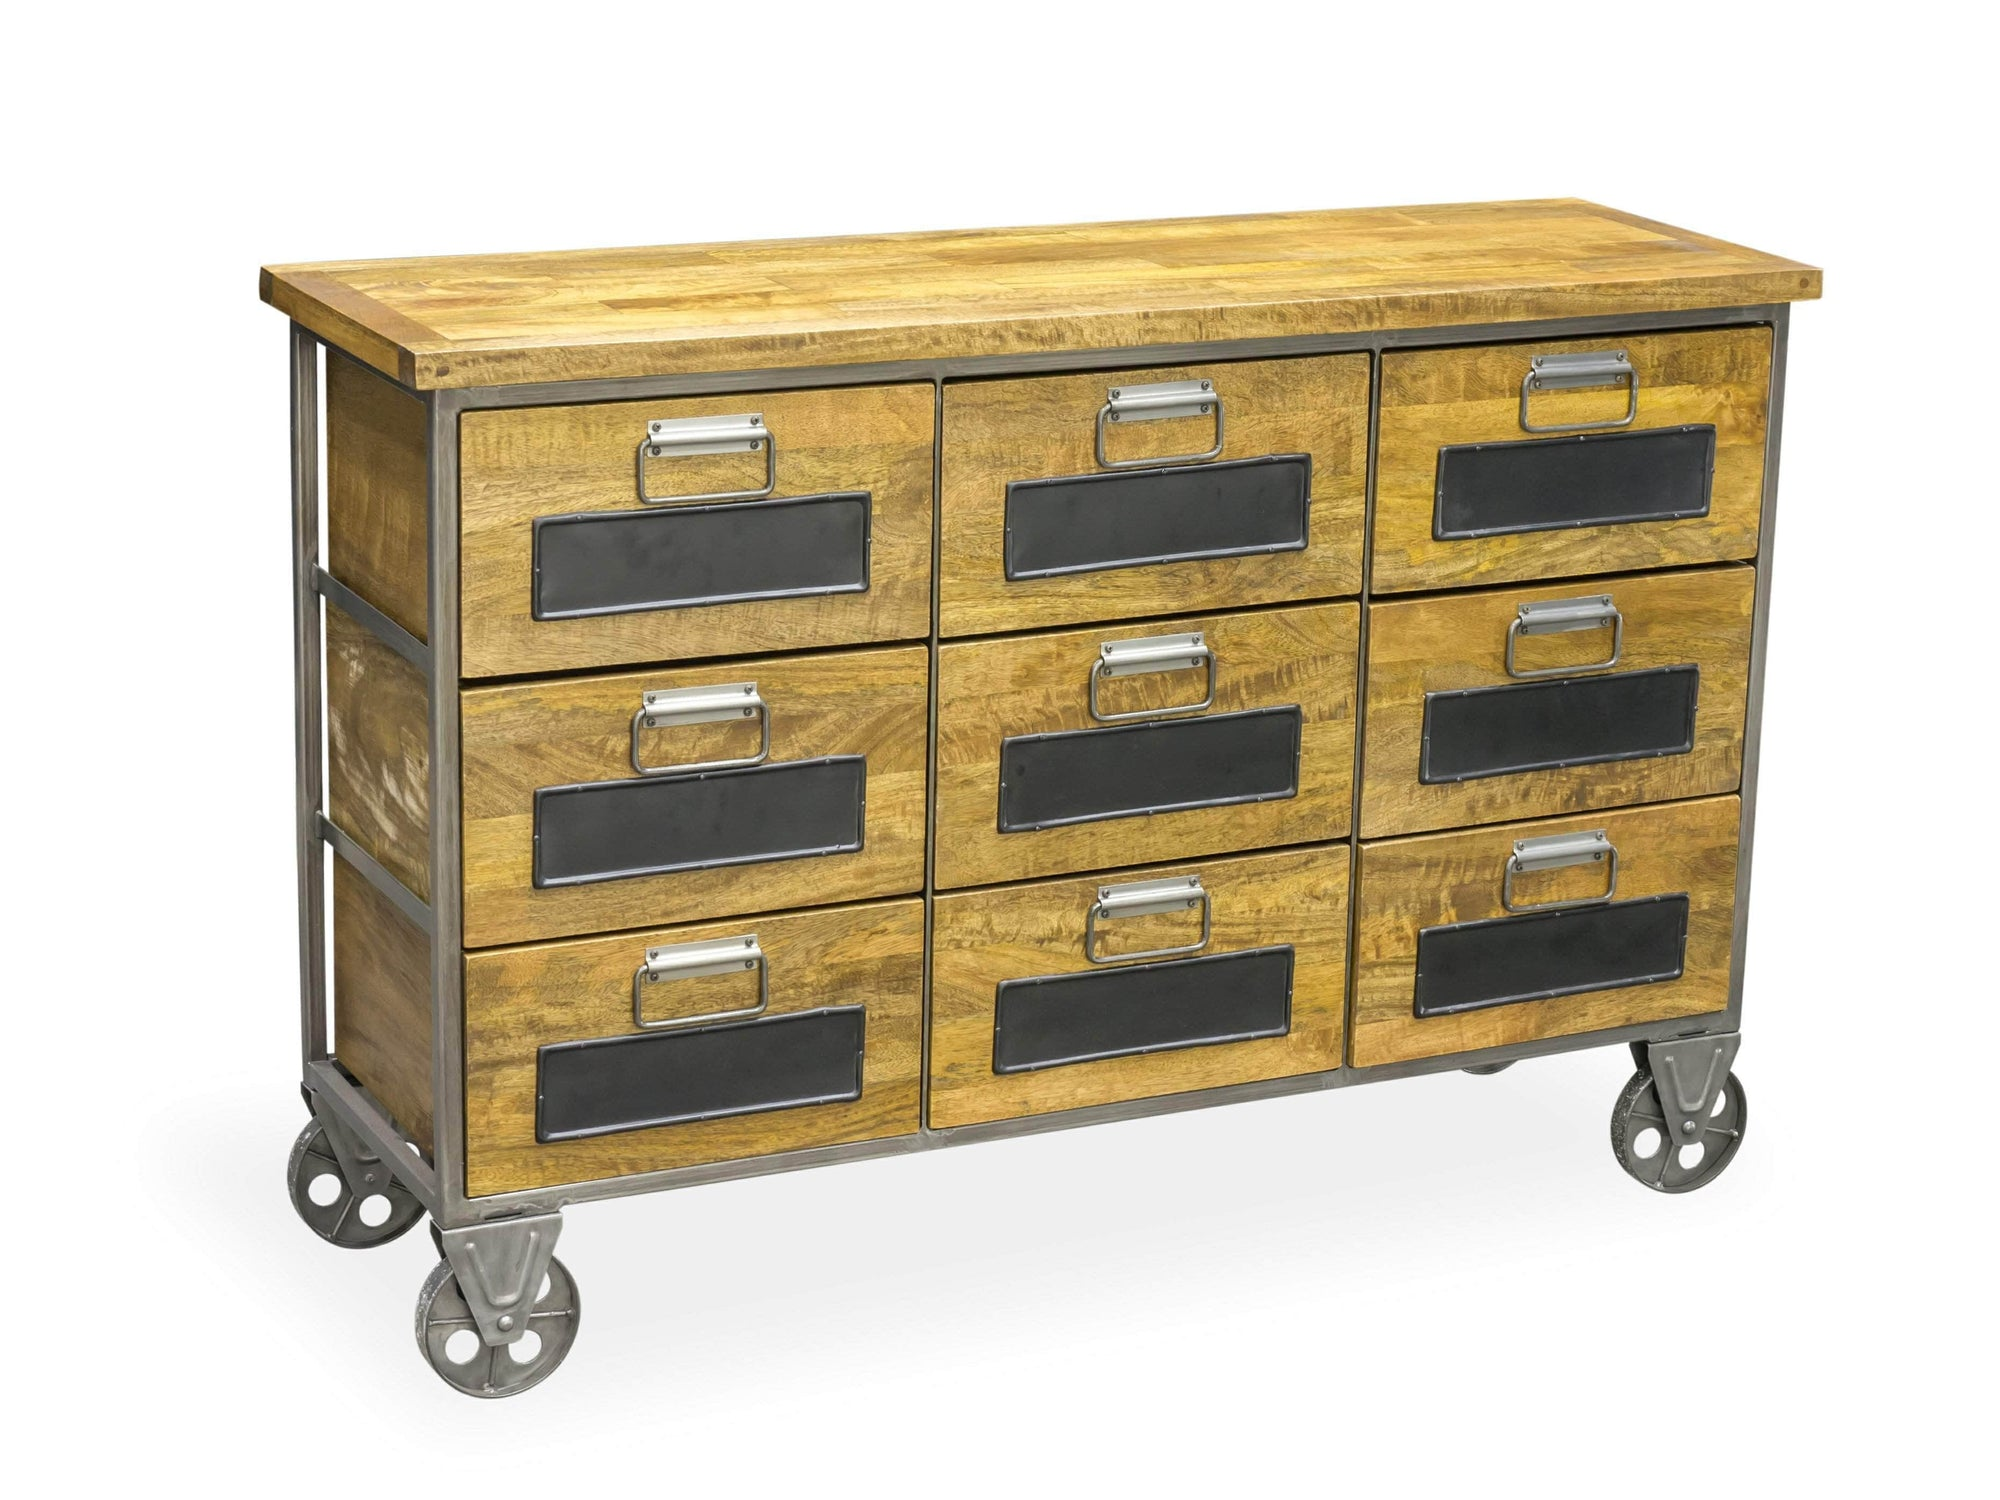 Industrial style storage chest with nine drawers, plus steel frame and supporting wheels